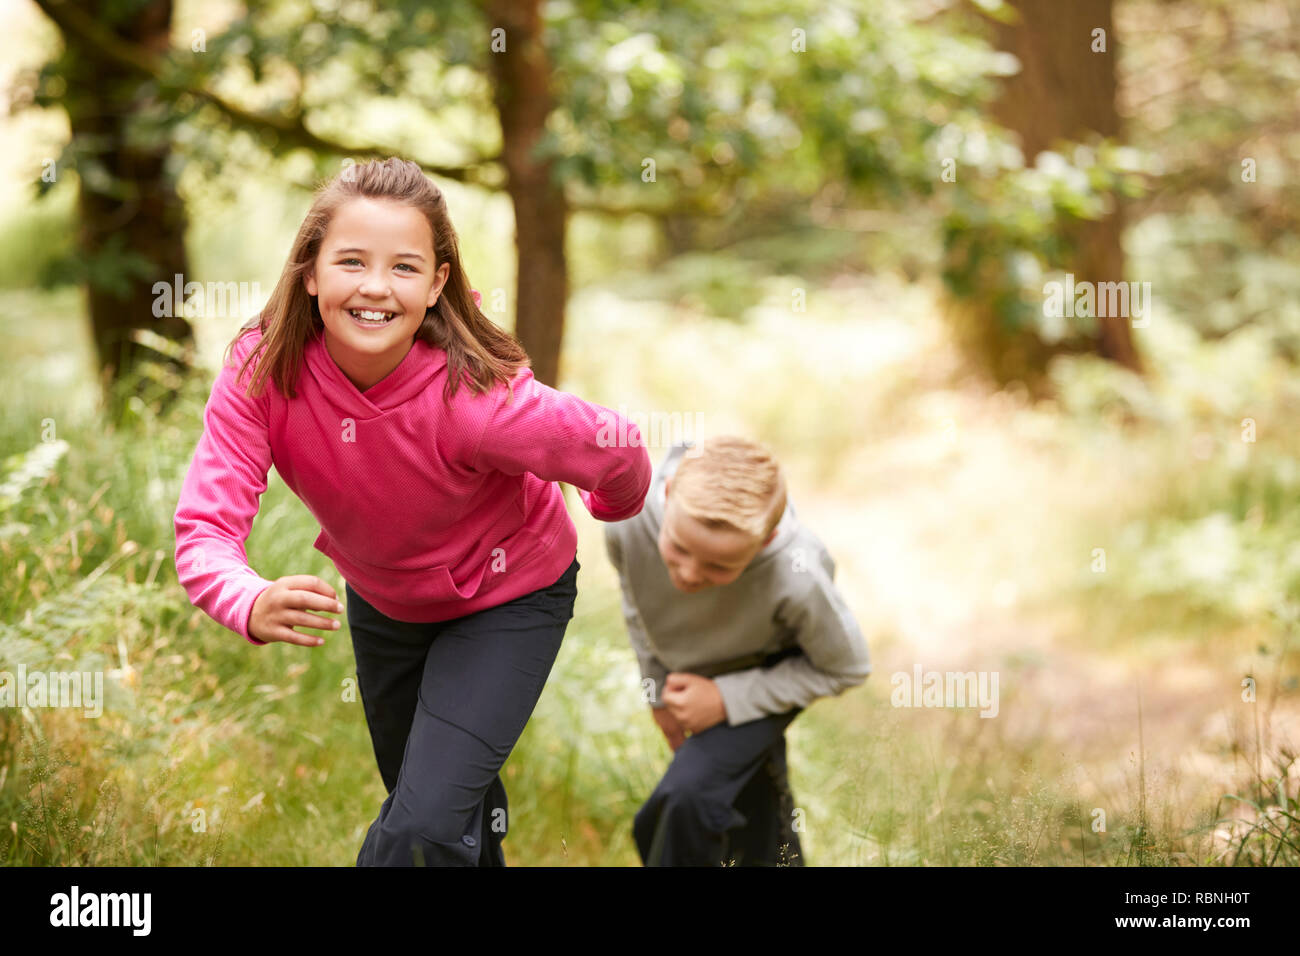 Two children walking in a forest amongst greenery smiling at camera, front view, focus on foreground - Stock Image